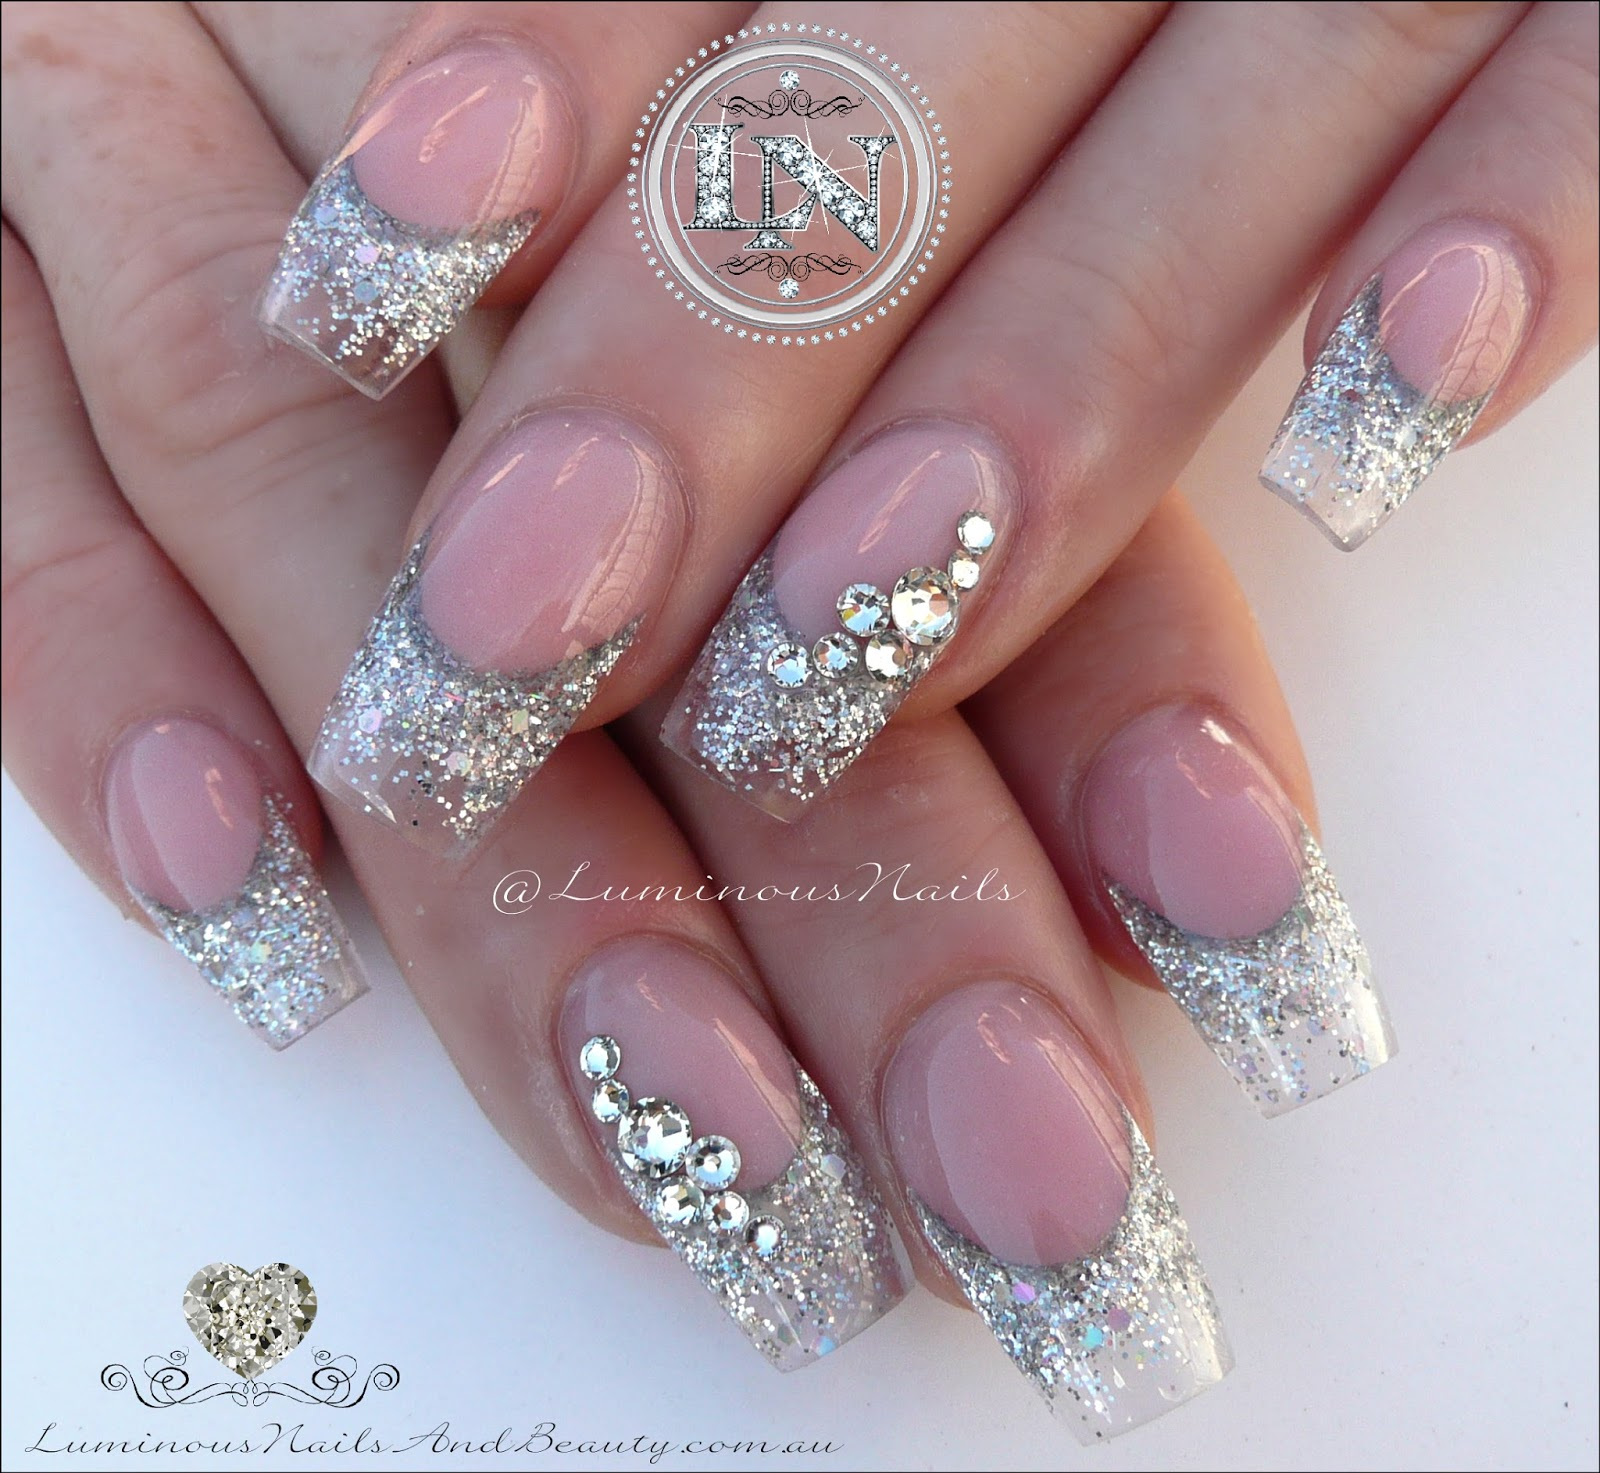 Magnificent Acrylic Nails For Wedding Image Embellishment